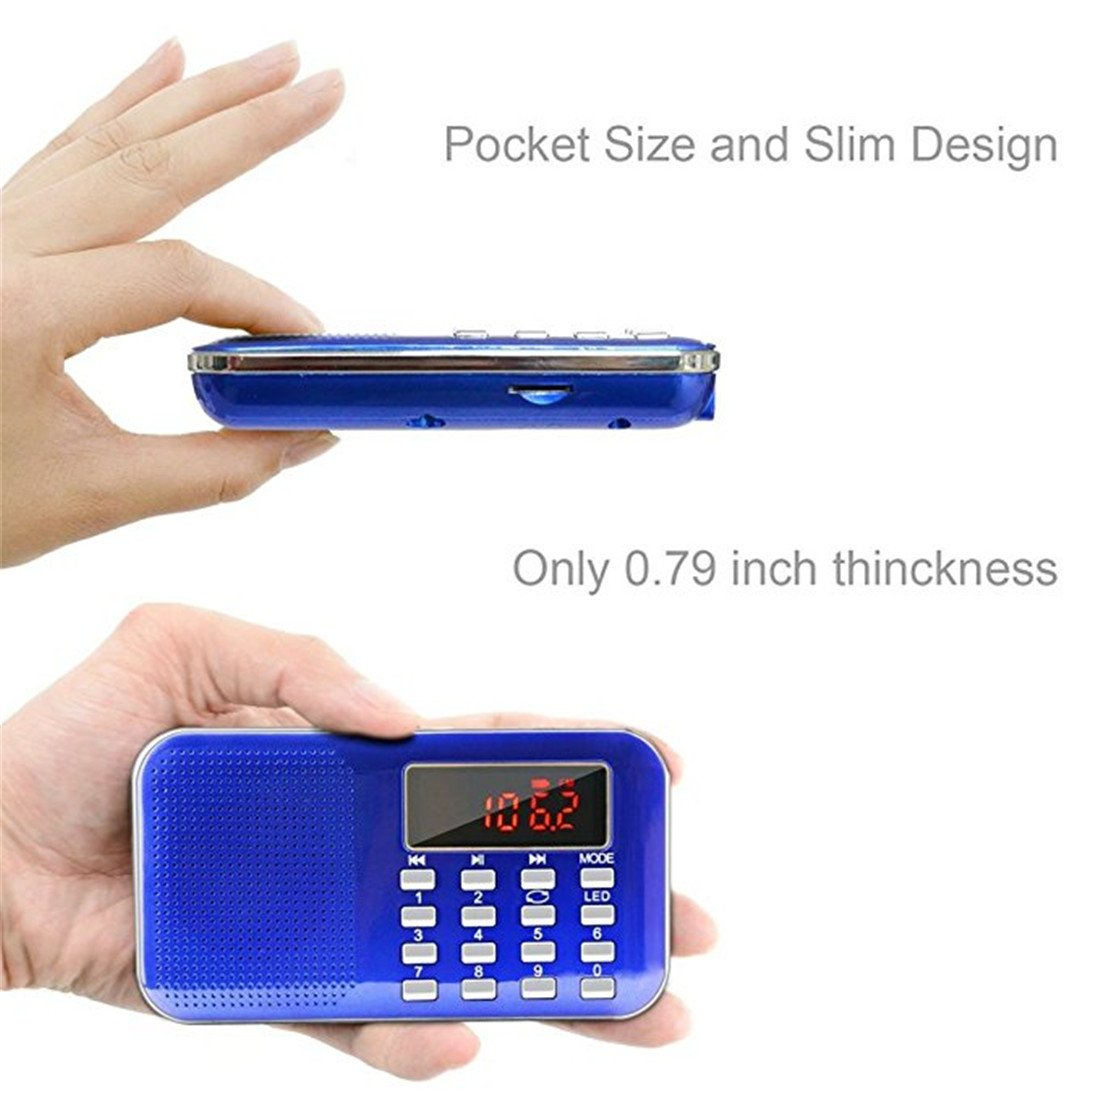 BeiLan Mini Digital AM FM Pocket Radio Portable Speaker Mp3 Music Player Stereo Sound Support TF Card USB Disk with LED Screen Display and Emergency Flashlight Function (Blue) by BeiLan (Image #4)